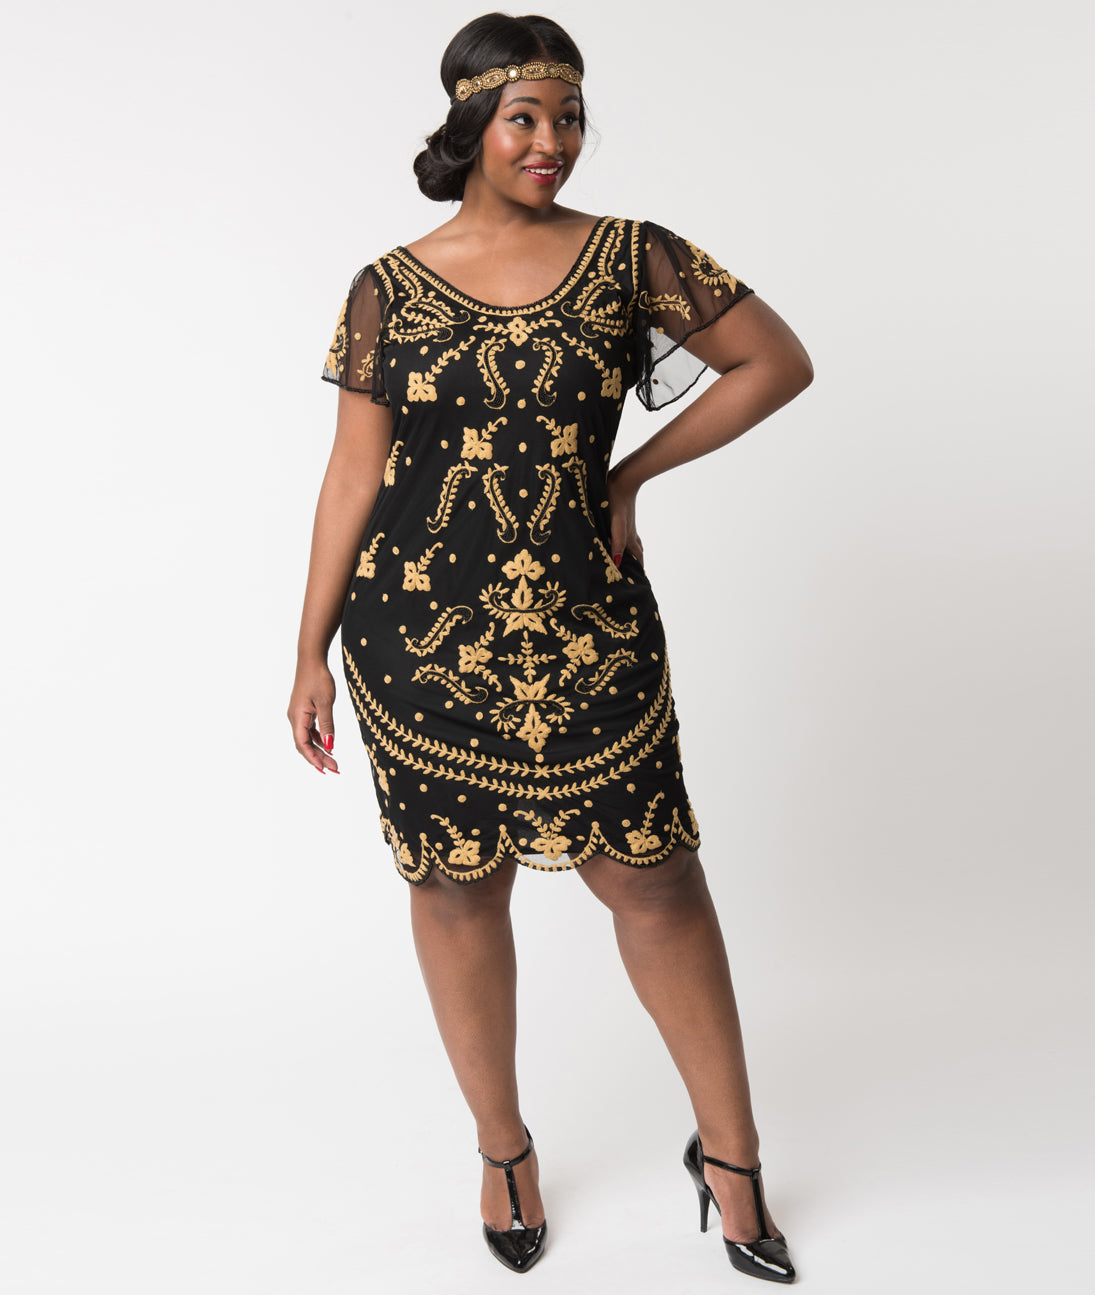 Roaring 20s Costumes- Flapper Costumes, Gangster Costumes Plus Size Vintage Style Black  Gold Embroidered Florence Flapper Dress $98.00 AT vintagedancer.com